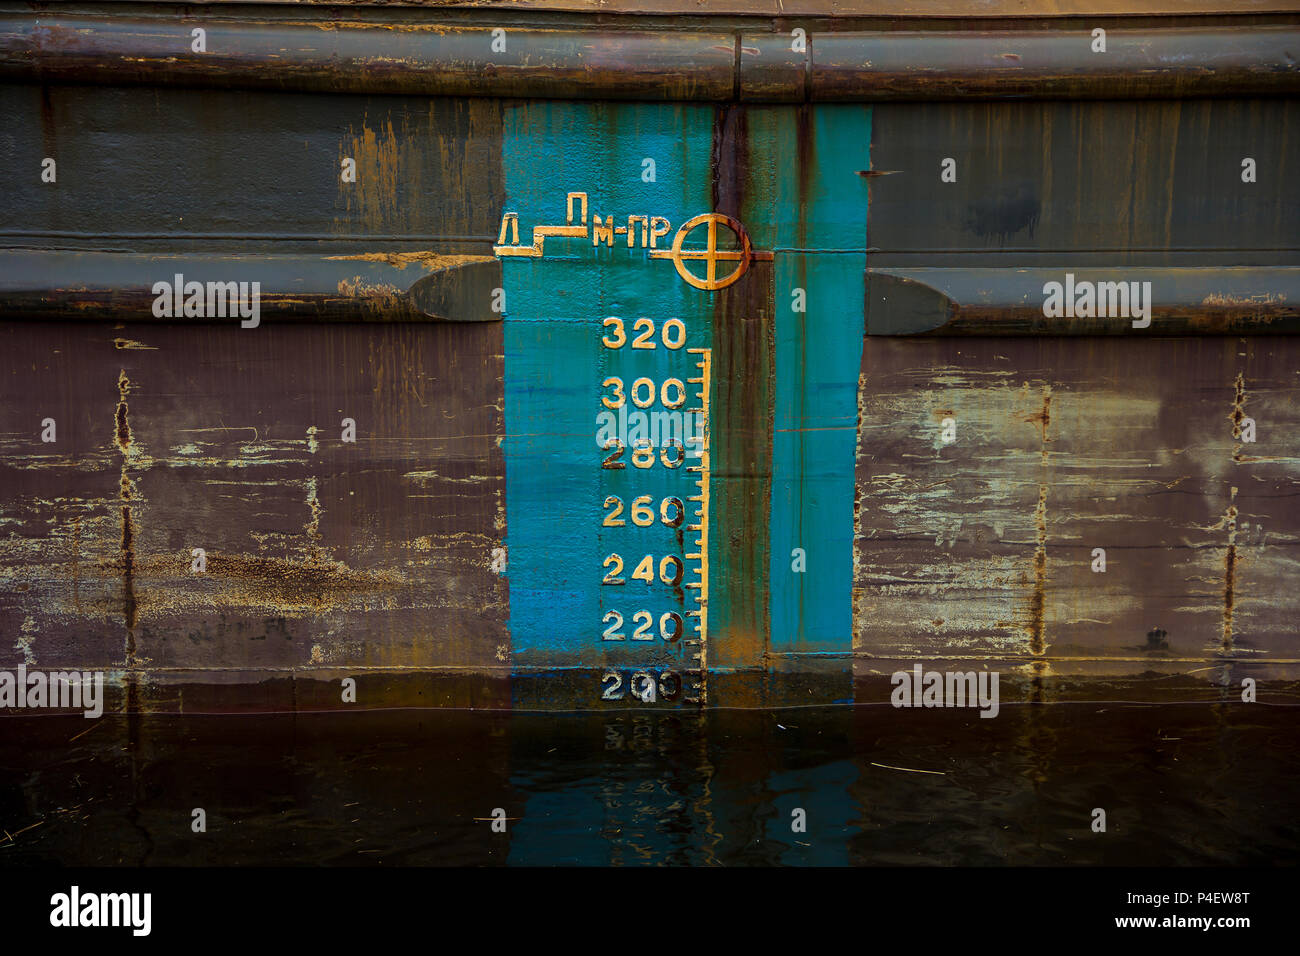 Waterline ship displacement marked on the ship side - Stock Image